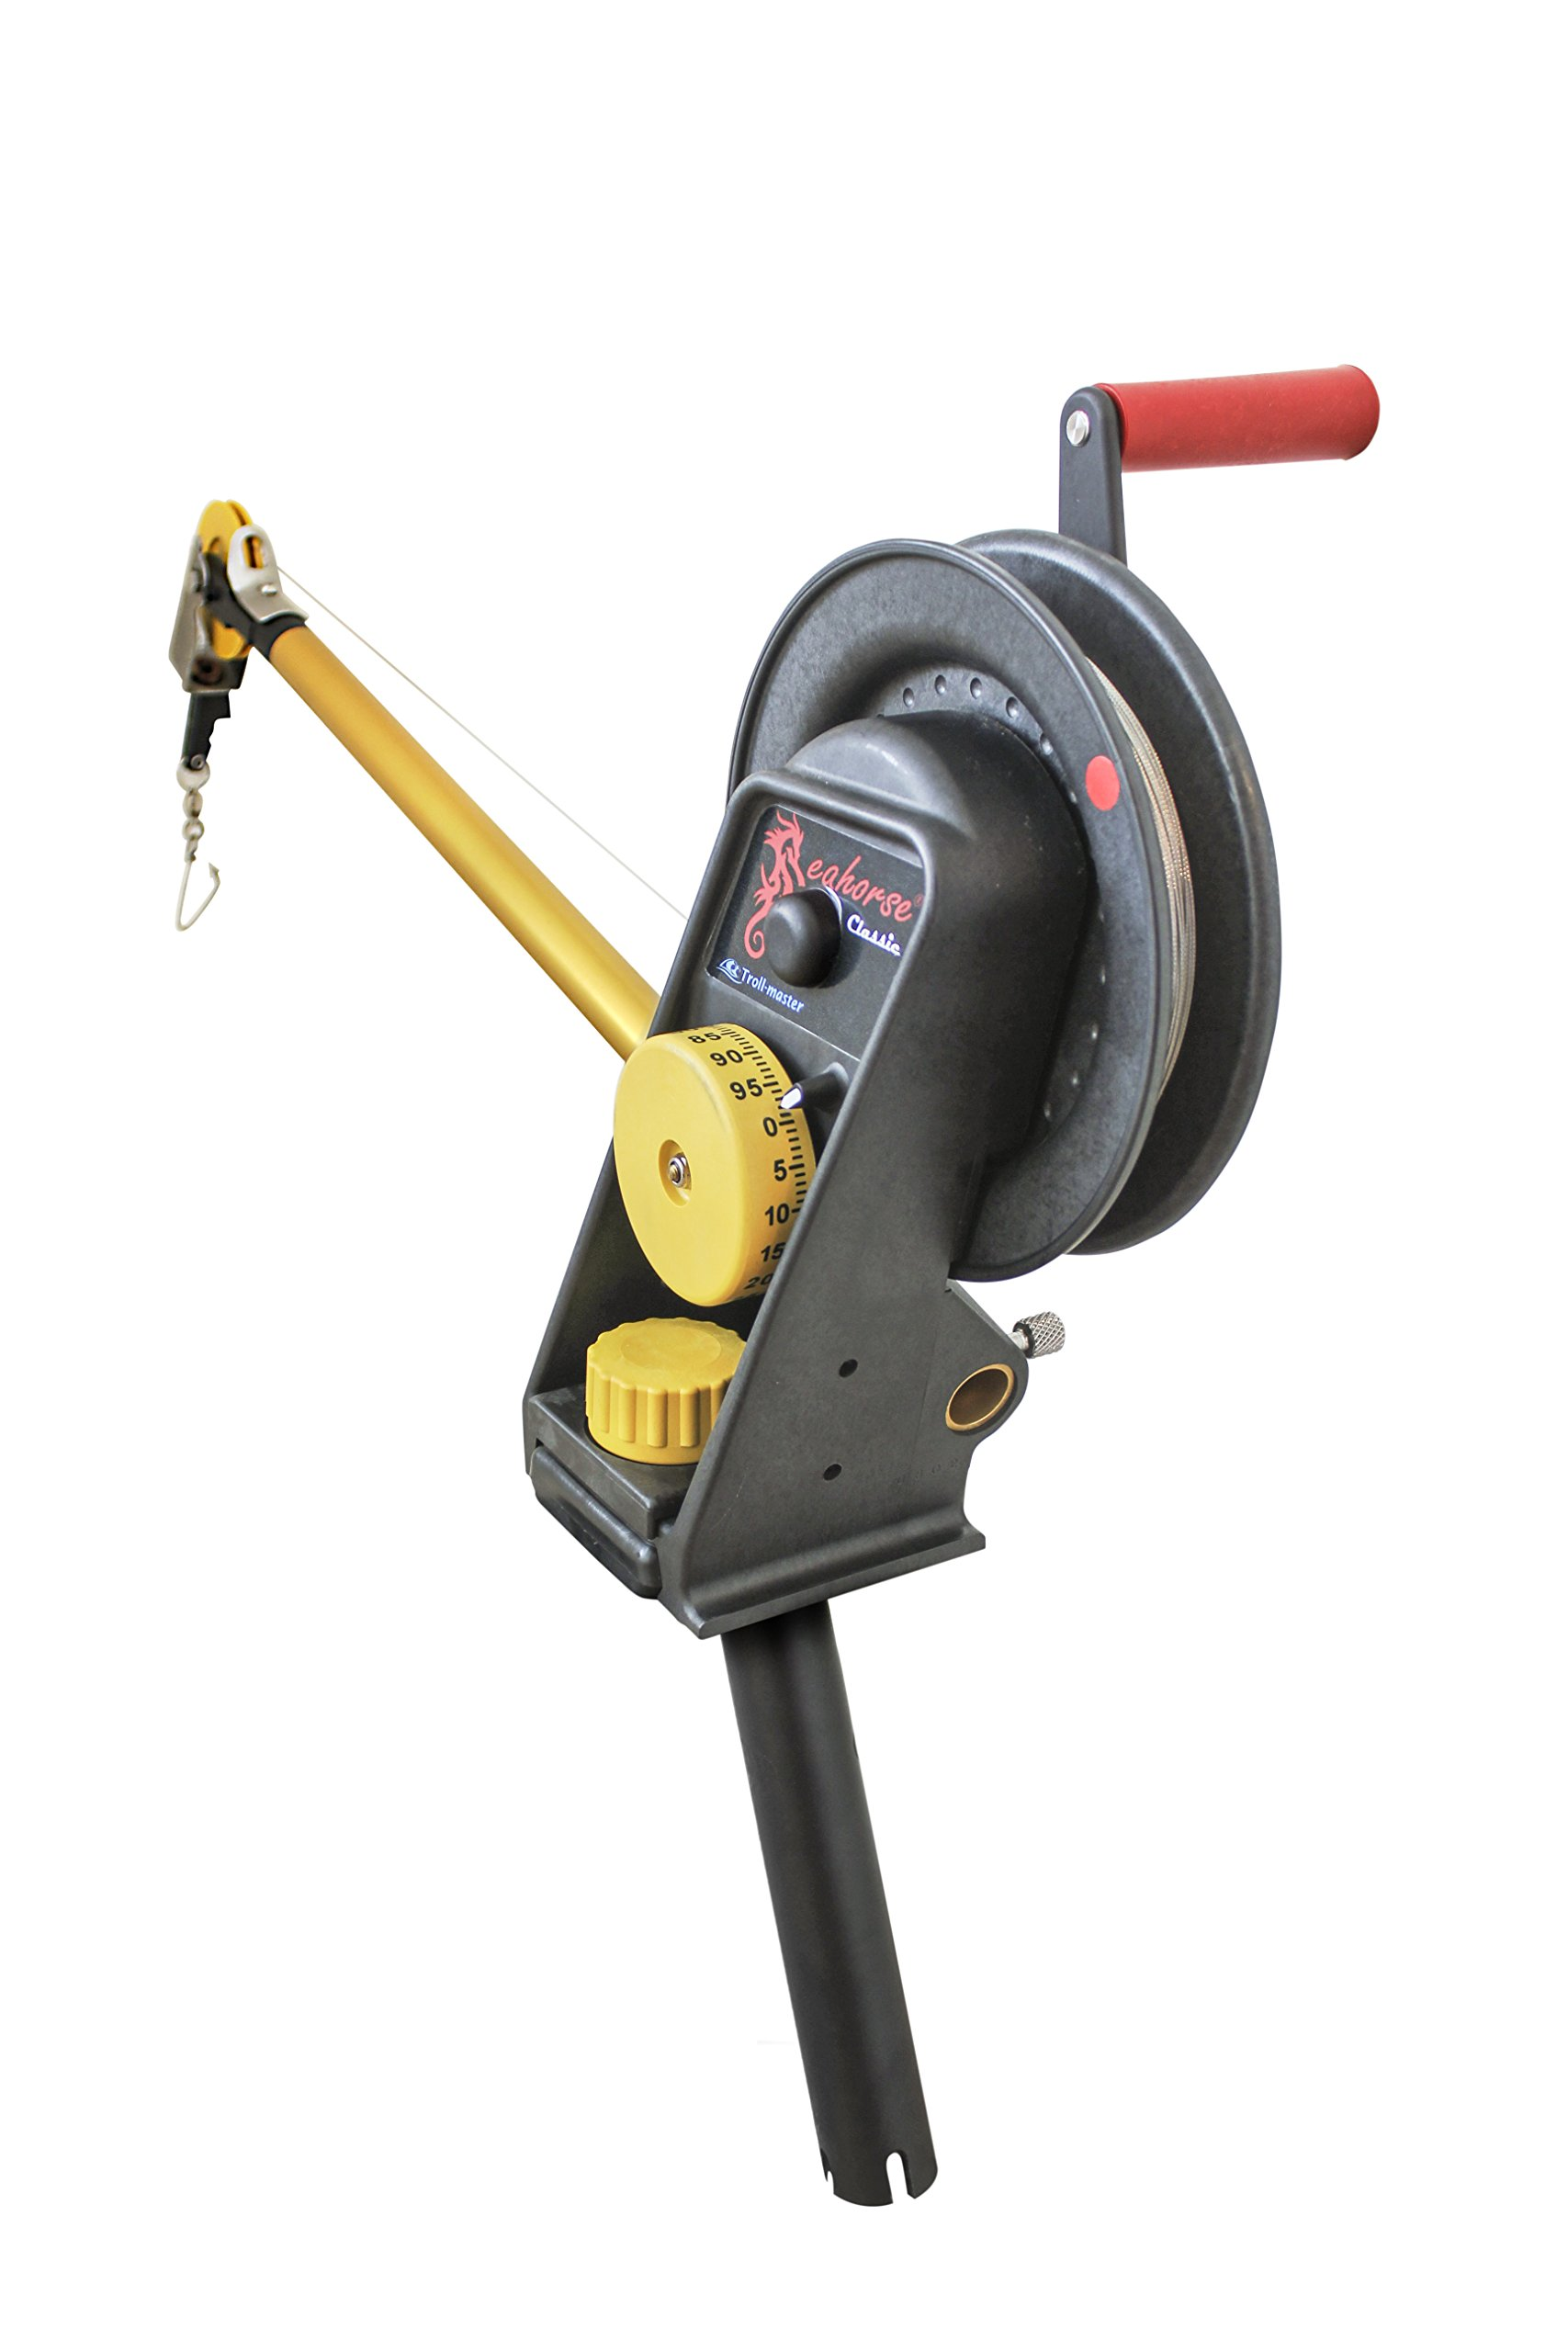 Seahorse Manual Downrigger with Gimbal Mount By Troll-master by Seahorse